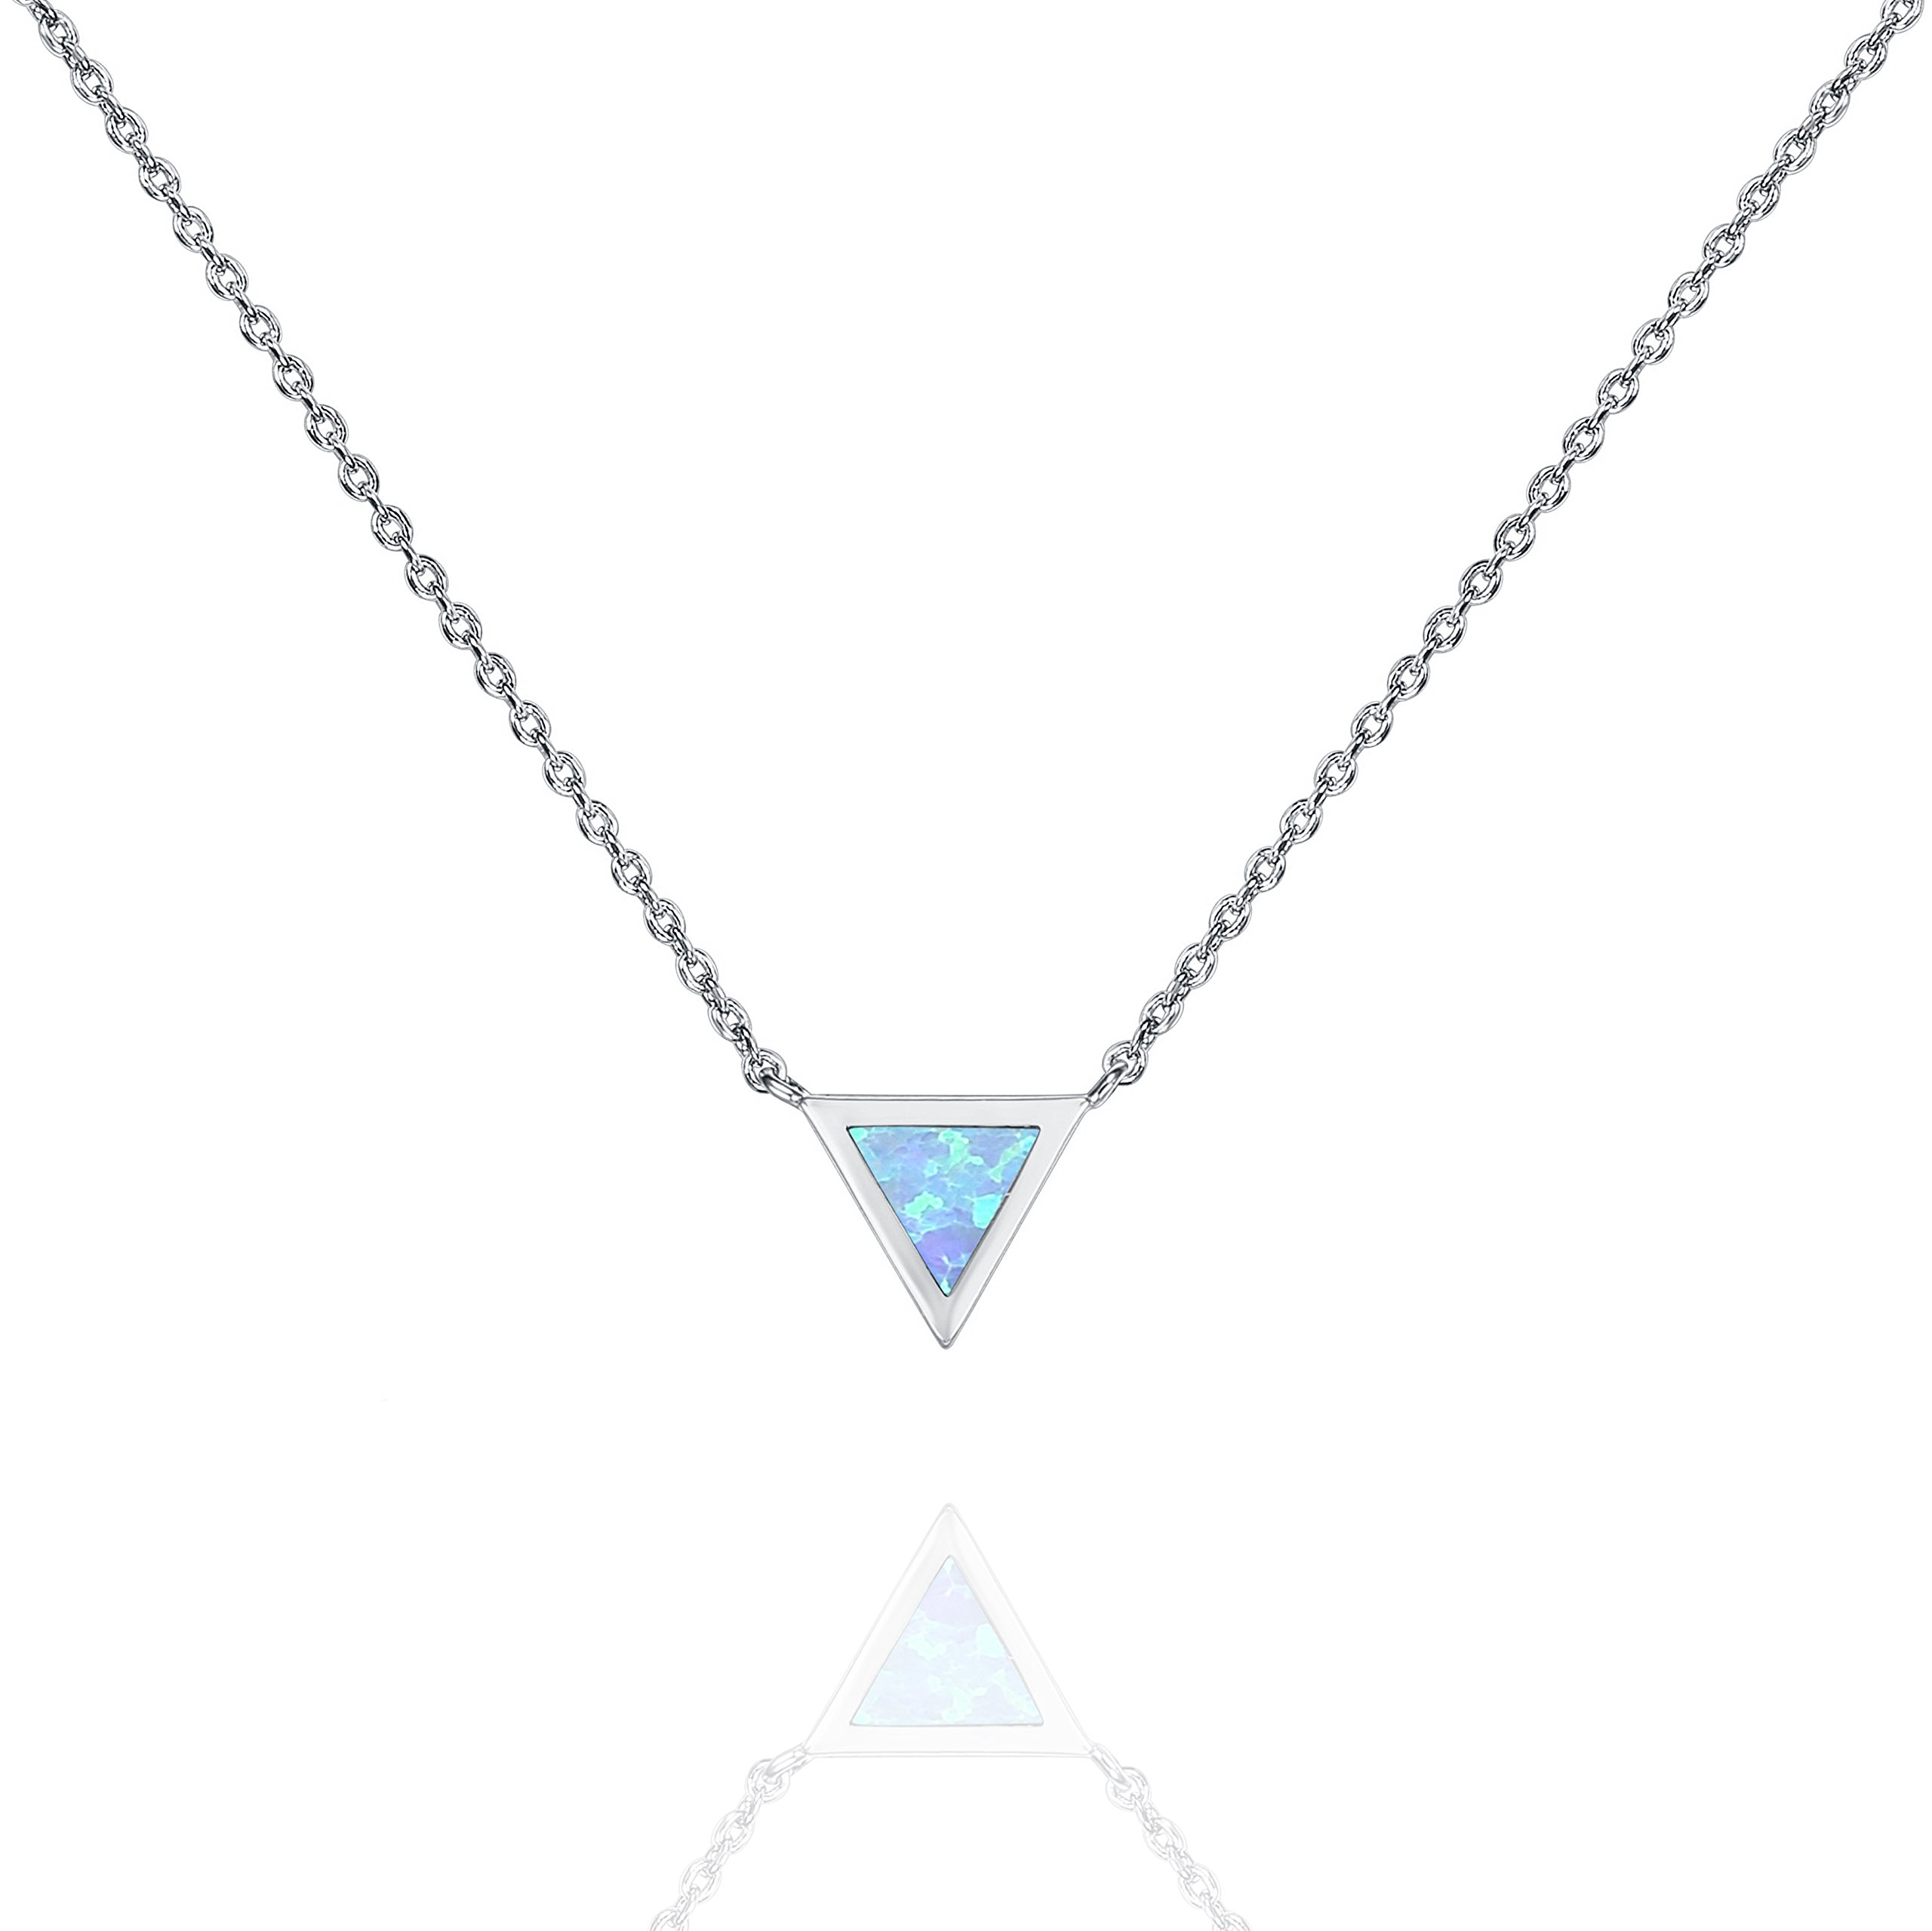 PAVOI 14K Yellow Gold Plated Triangle Bezel Set Blue Opal Necklace 16-18